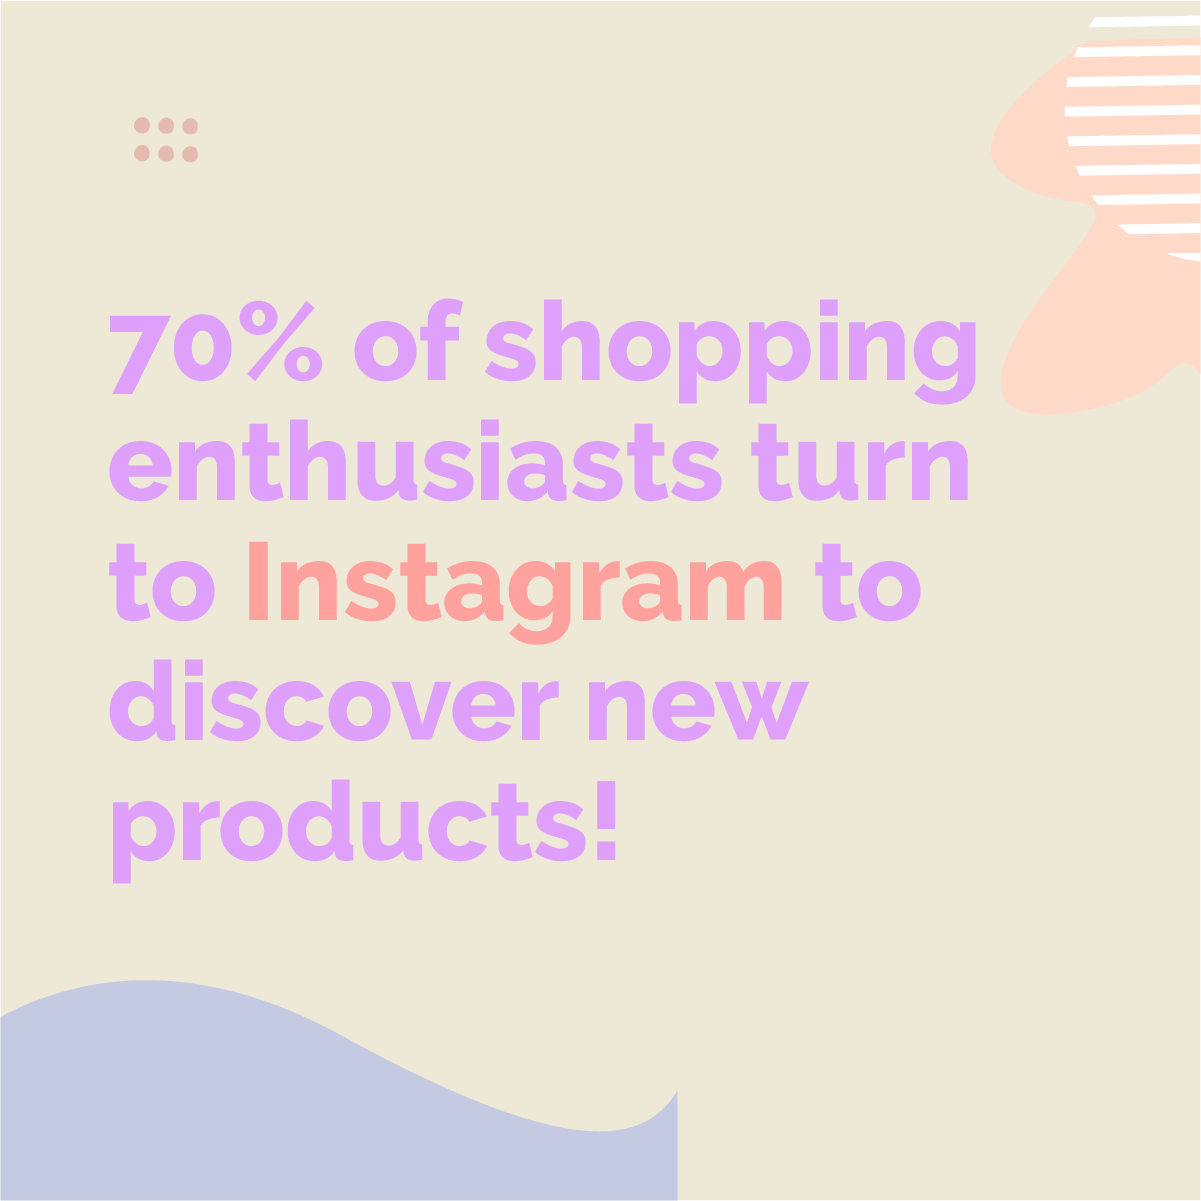 70% of shopping enthusiasts turn to Instagram to discover new products!